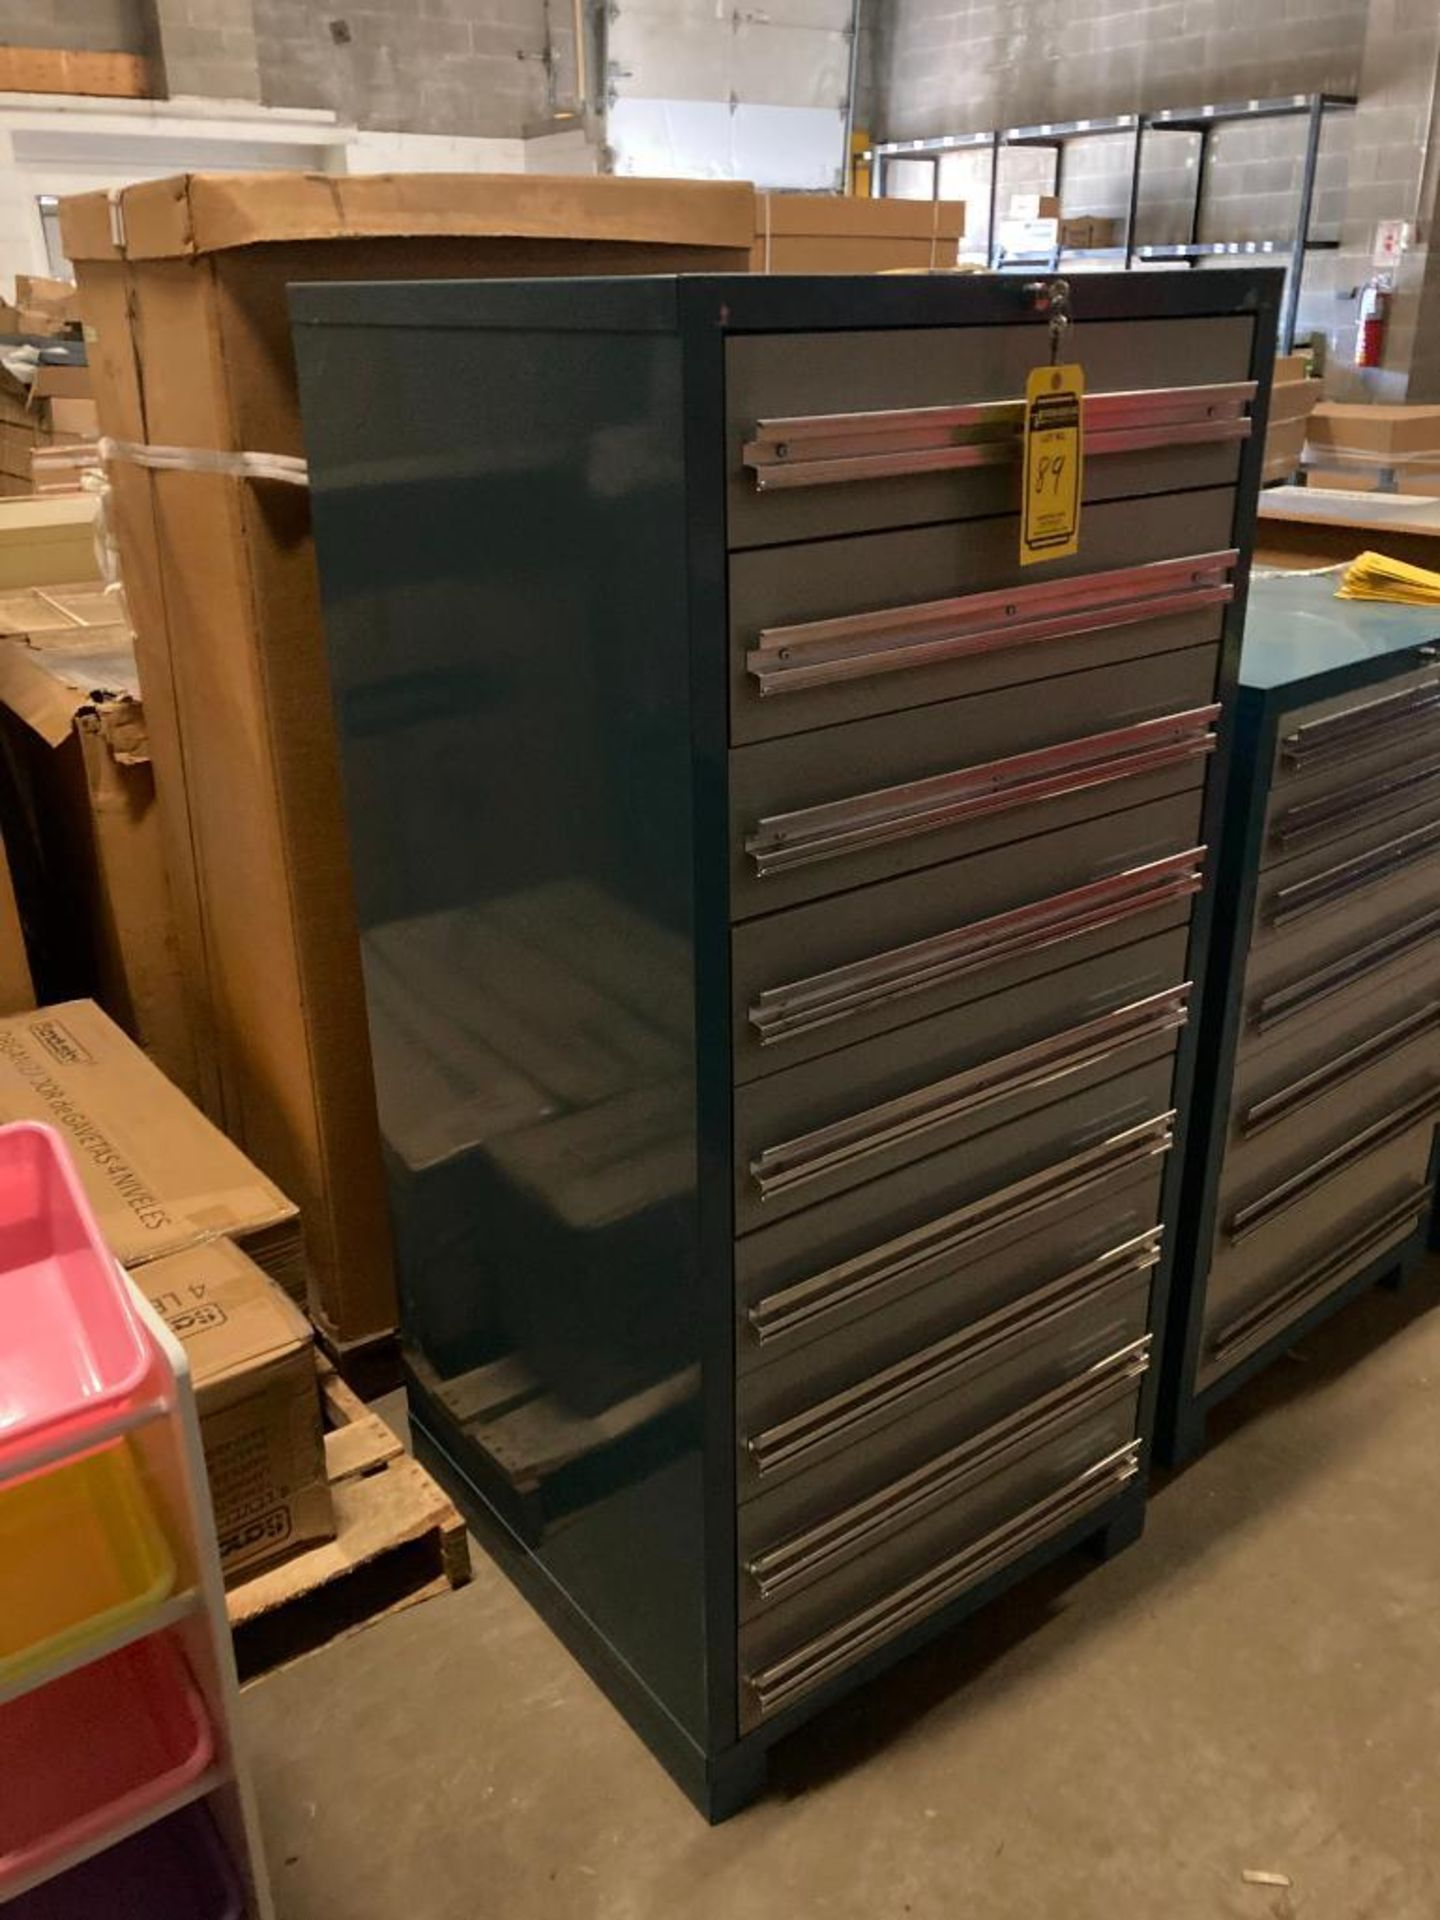 (2X) (NEW) EDSAL 9-DRAWER HEAVY DUTY MODULAR TOOLING CABINETS, 28.25''W X 61.5''H X 28.25''D, MODEL - Image 2 of 2